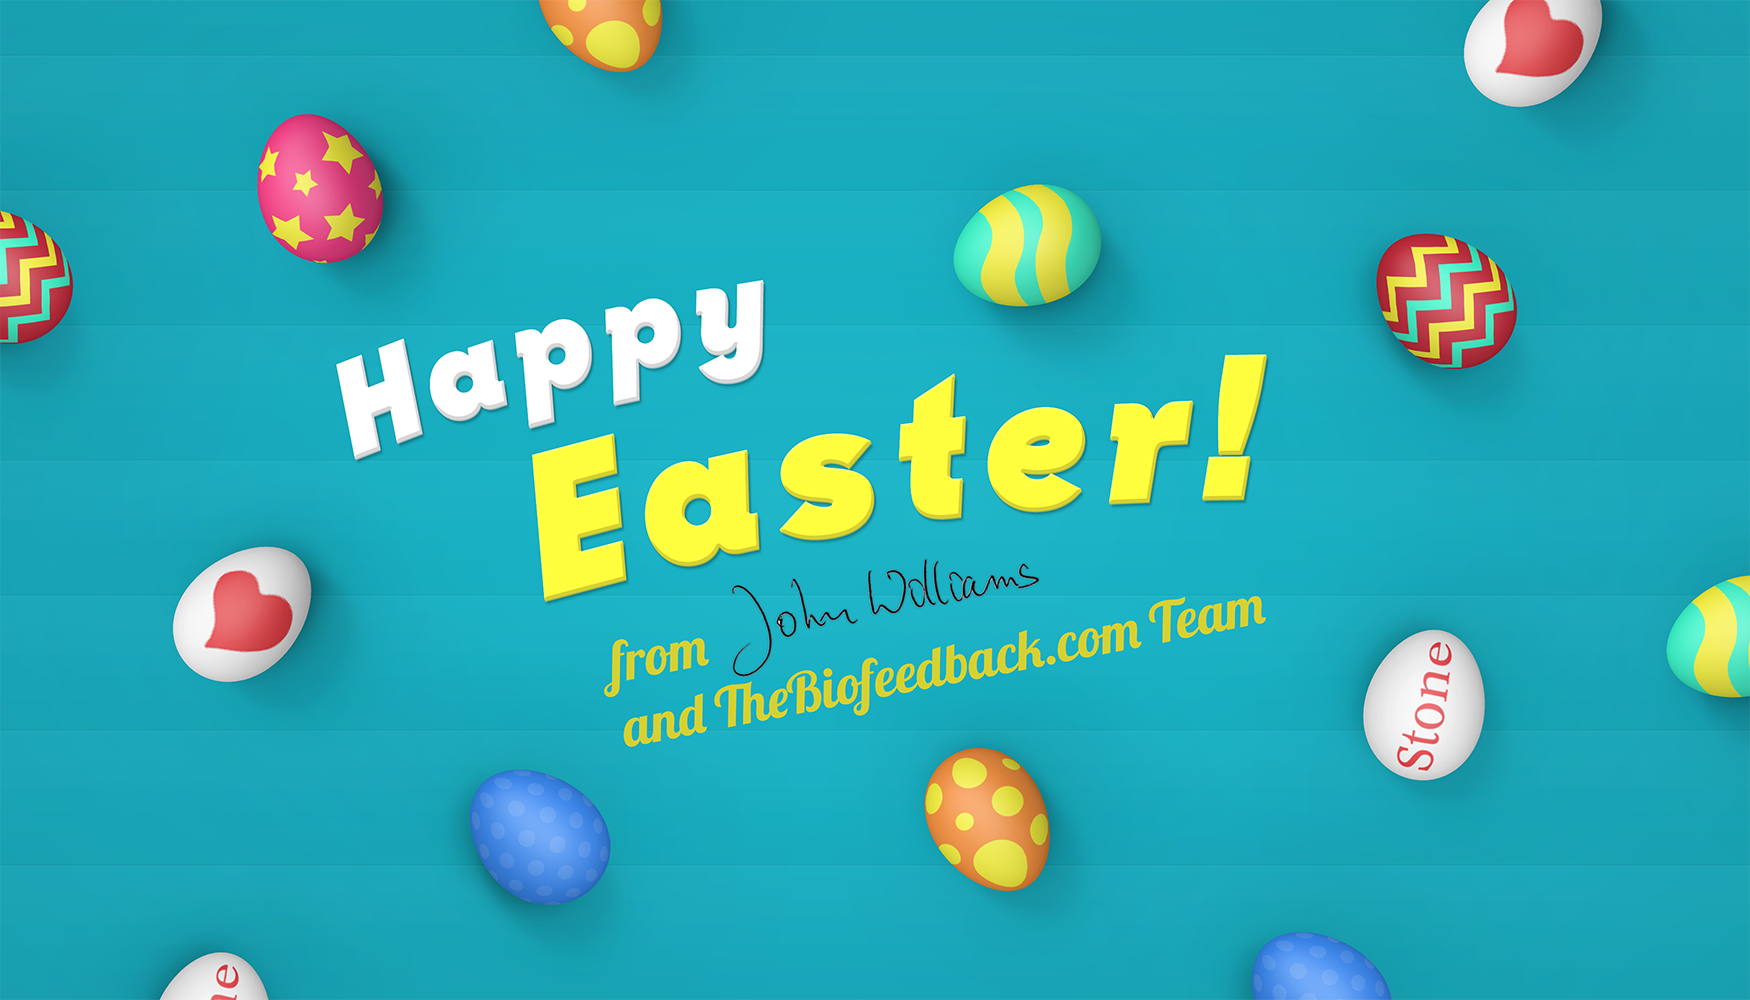 Happy Easter from TheBiofeedback.com!